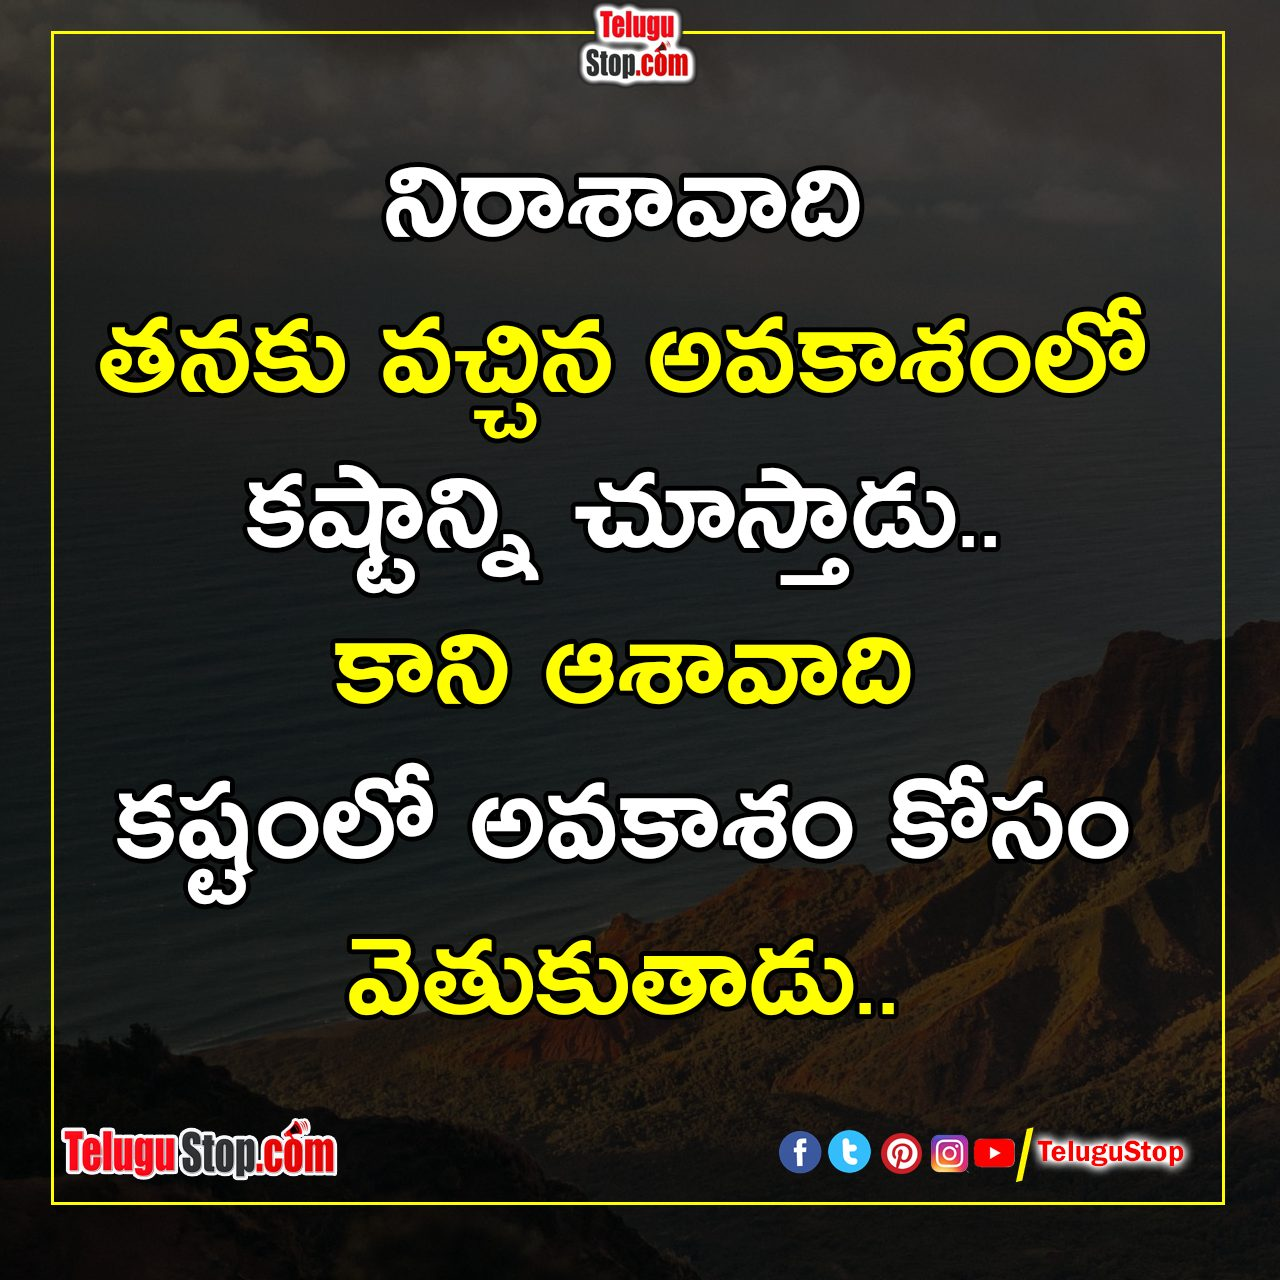 Telugu Facades In The Human Body Inspiraitiomal Quotes, Optimistic Related Inspirational Quotes, Swami Vivekananda Inspirational Quotes, Who Work Hard Inspirational Quotes-Telugu Daily Quotes - Inspirational/Motivational/Love/Friendship/Good Morning Quote